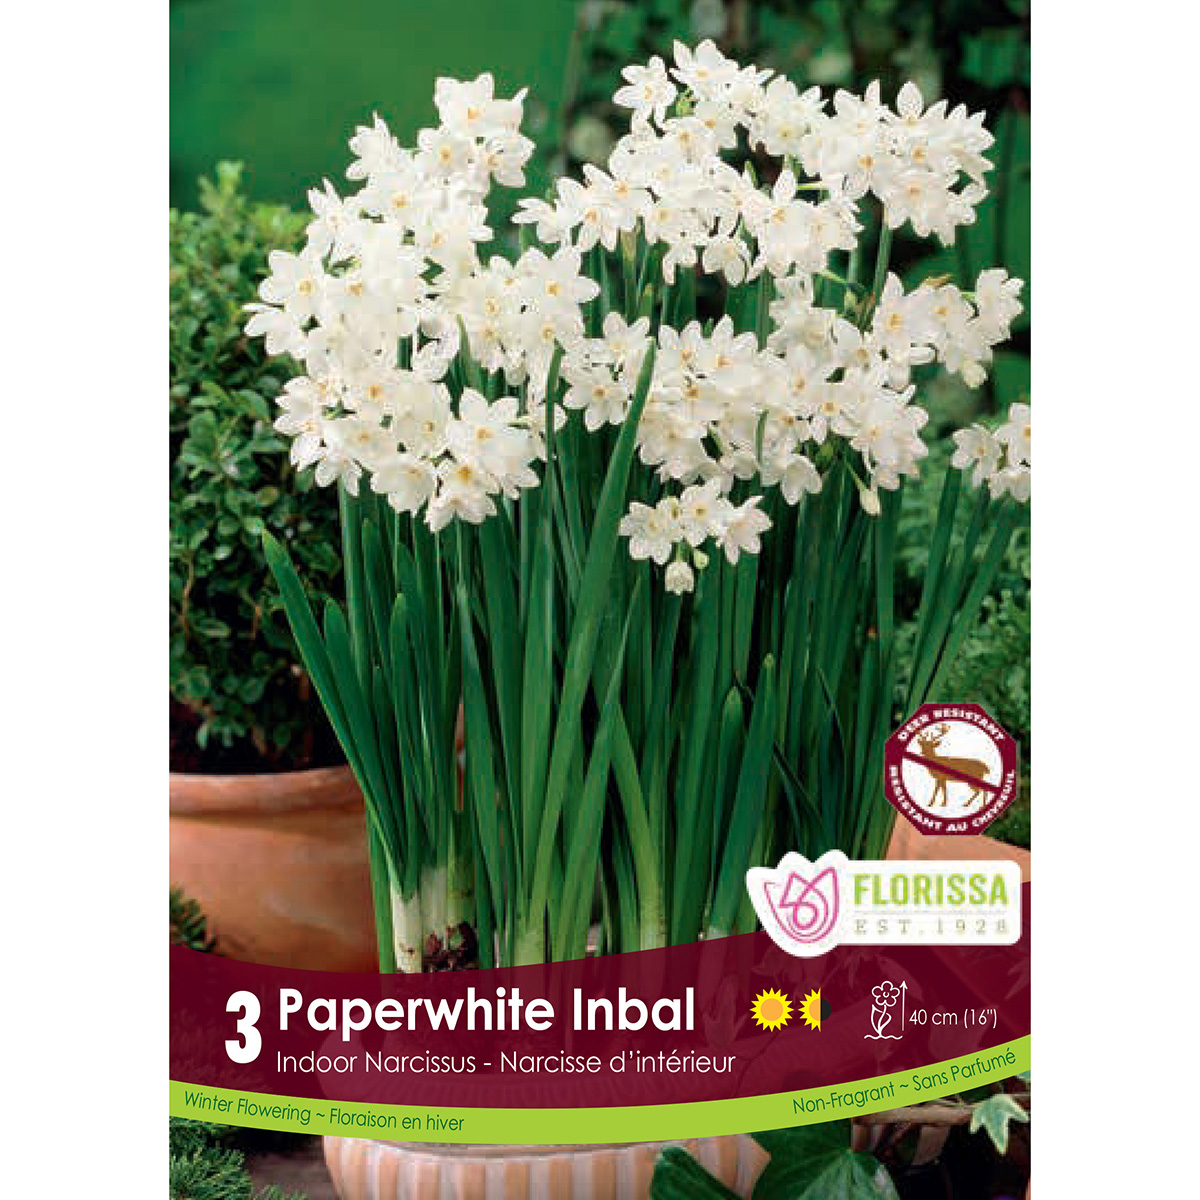 Narcissus 'Paperwhite Inbal' Bulbs